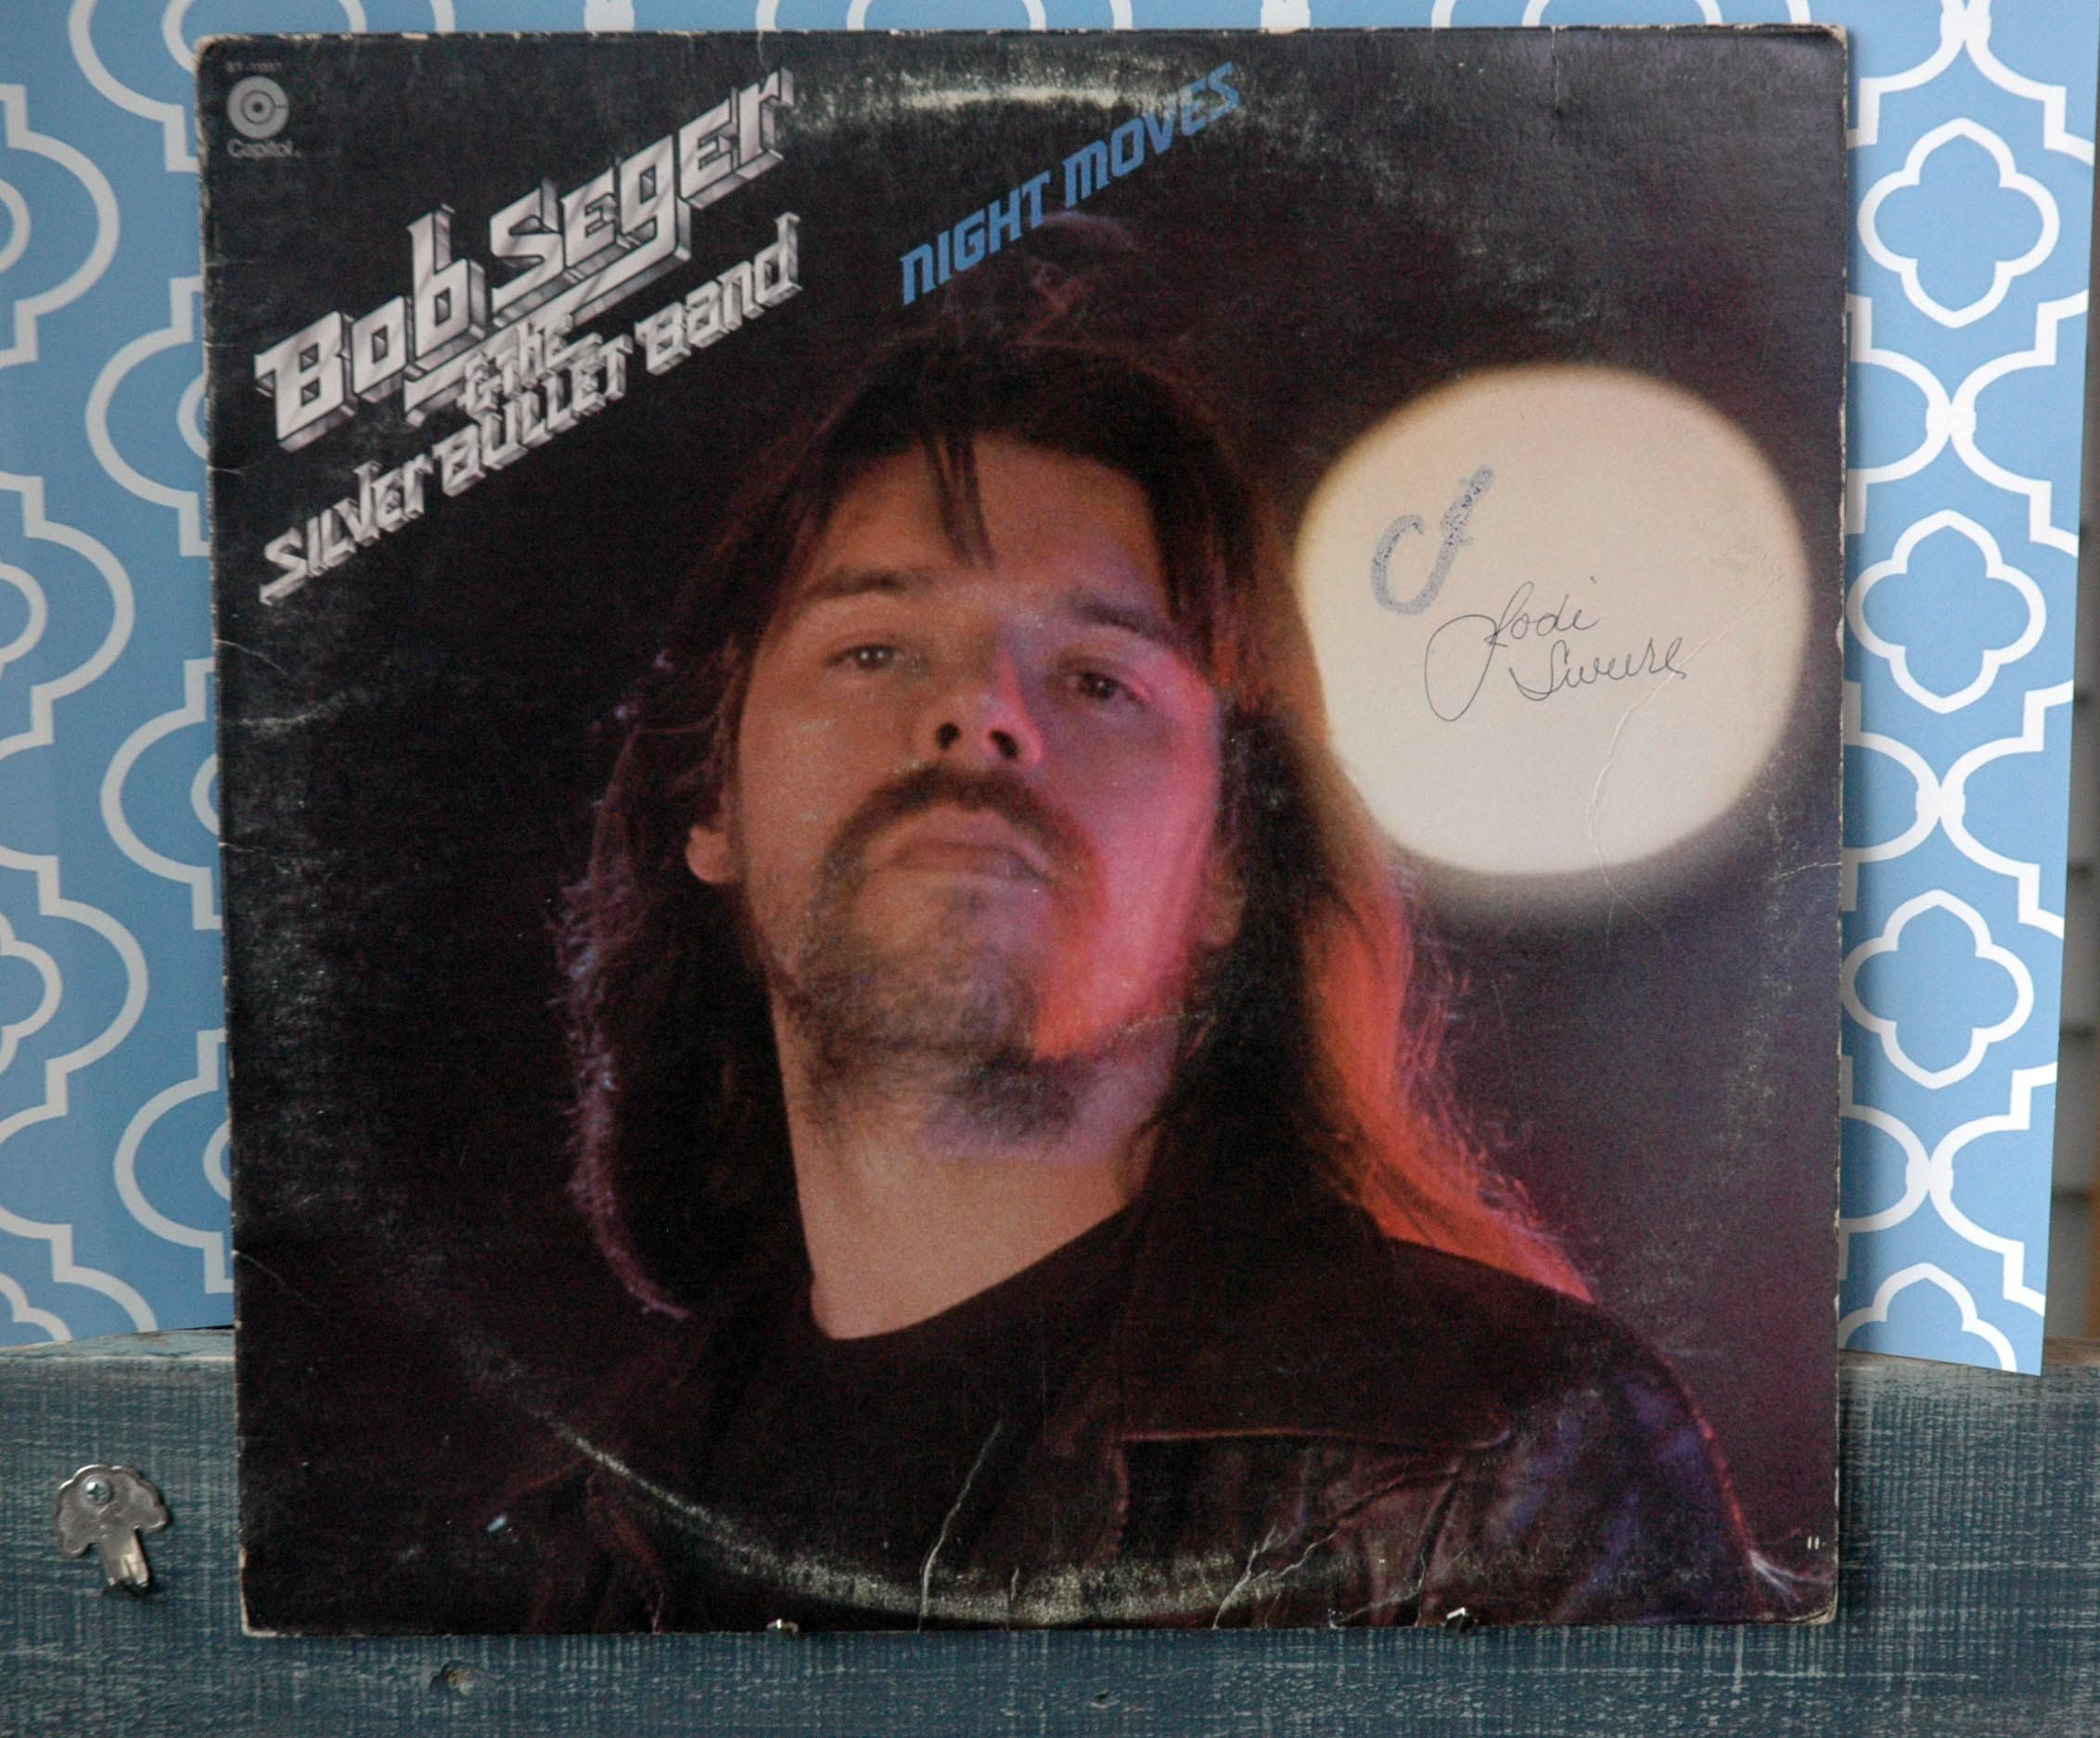 1st Vinyl Addition To My Etsy Shop Free Shipping Bob Seger And The Silver Bullet Band Night Movie Lp Vinyl Album Us Bob Seger Night Moves Vinyl Record Album